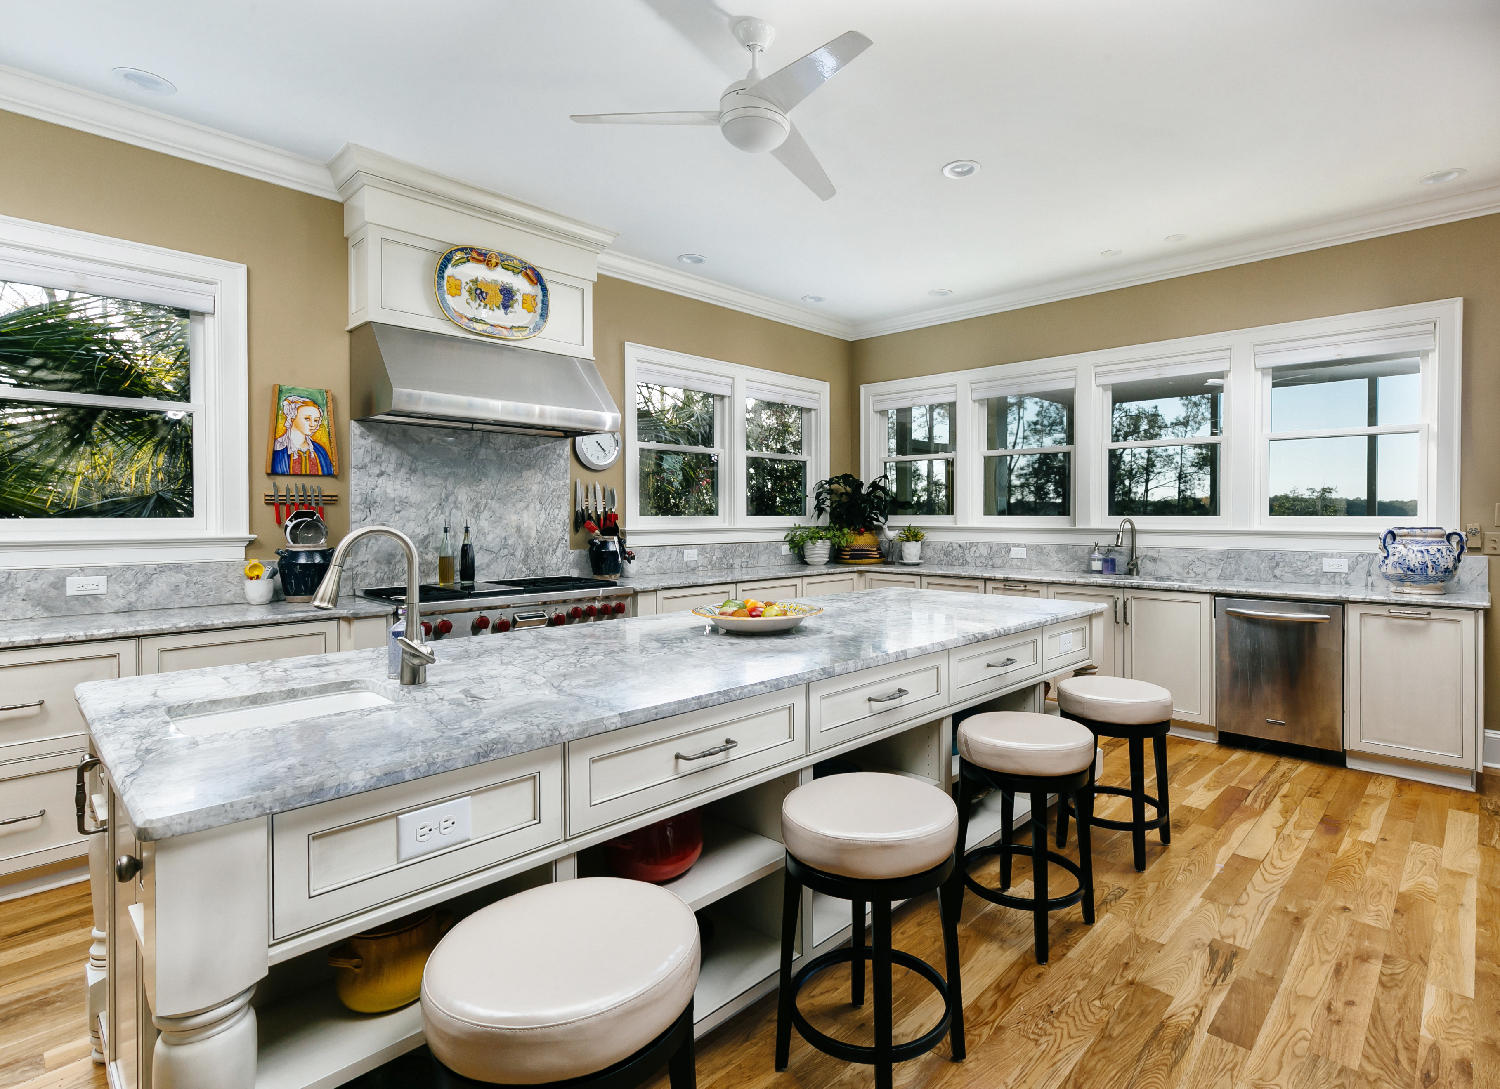 Rivertowne On The Wando Homes For Sale - 2212 Hartfords Bluff, Mount Pleasant, SC - 24